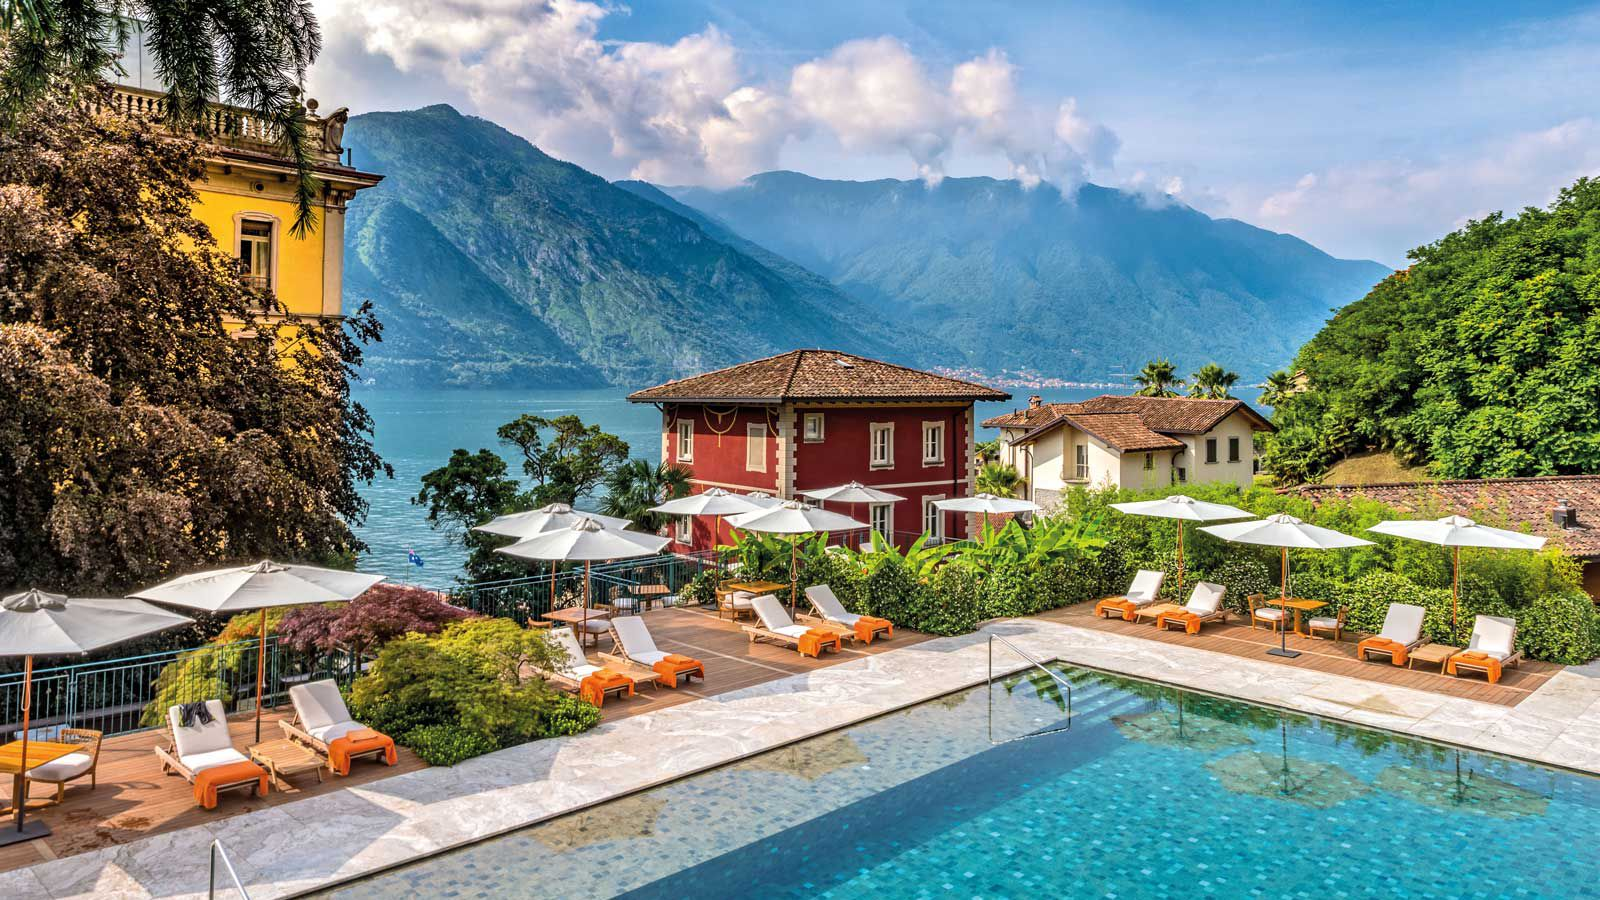 Pool at the Grand Hotel Tremezzo, in Italy